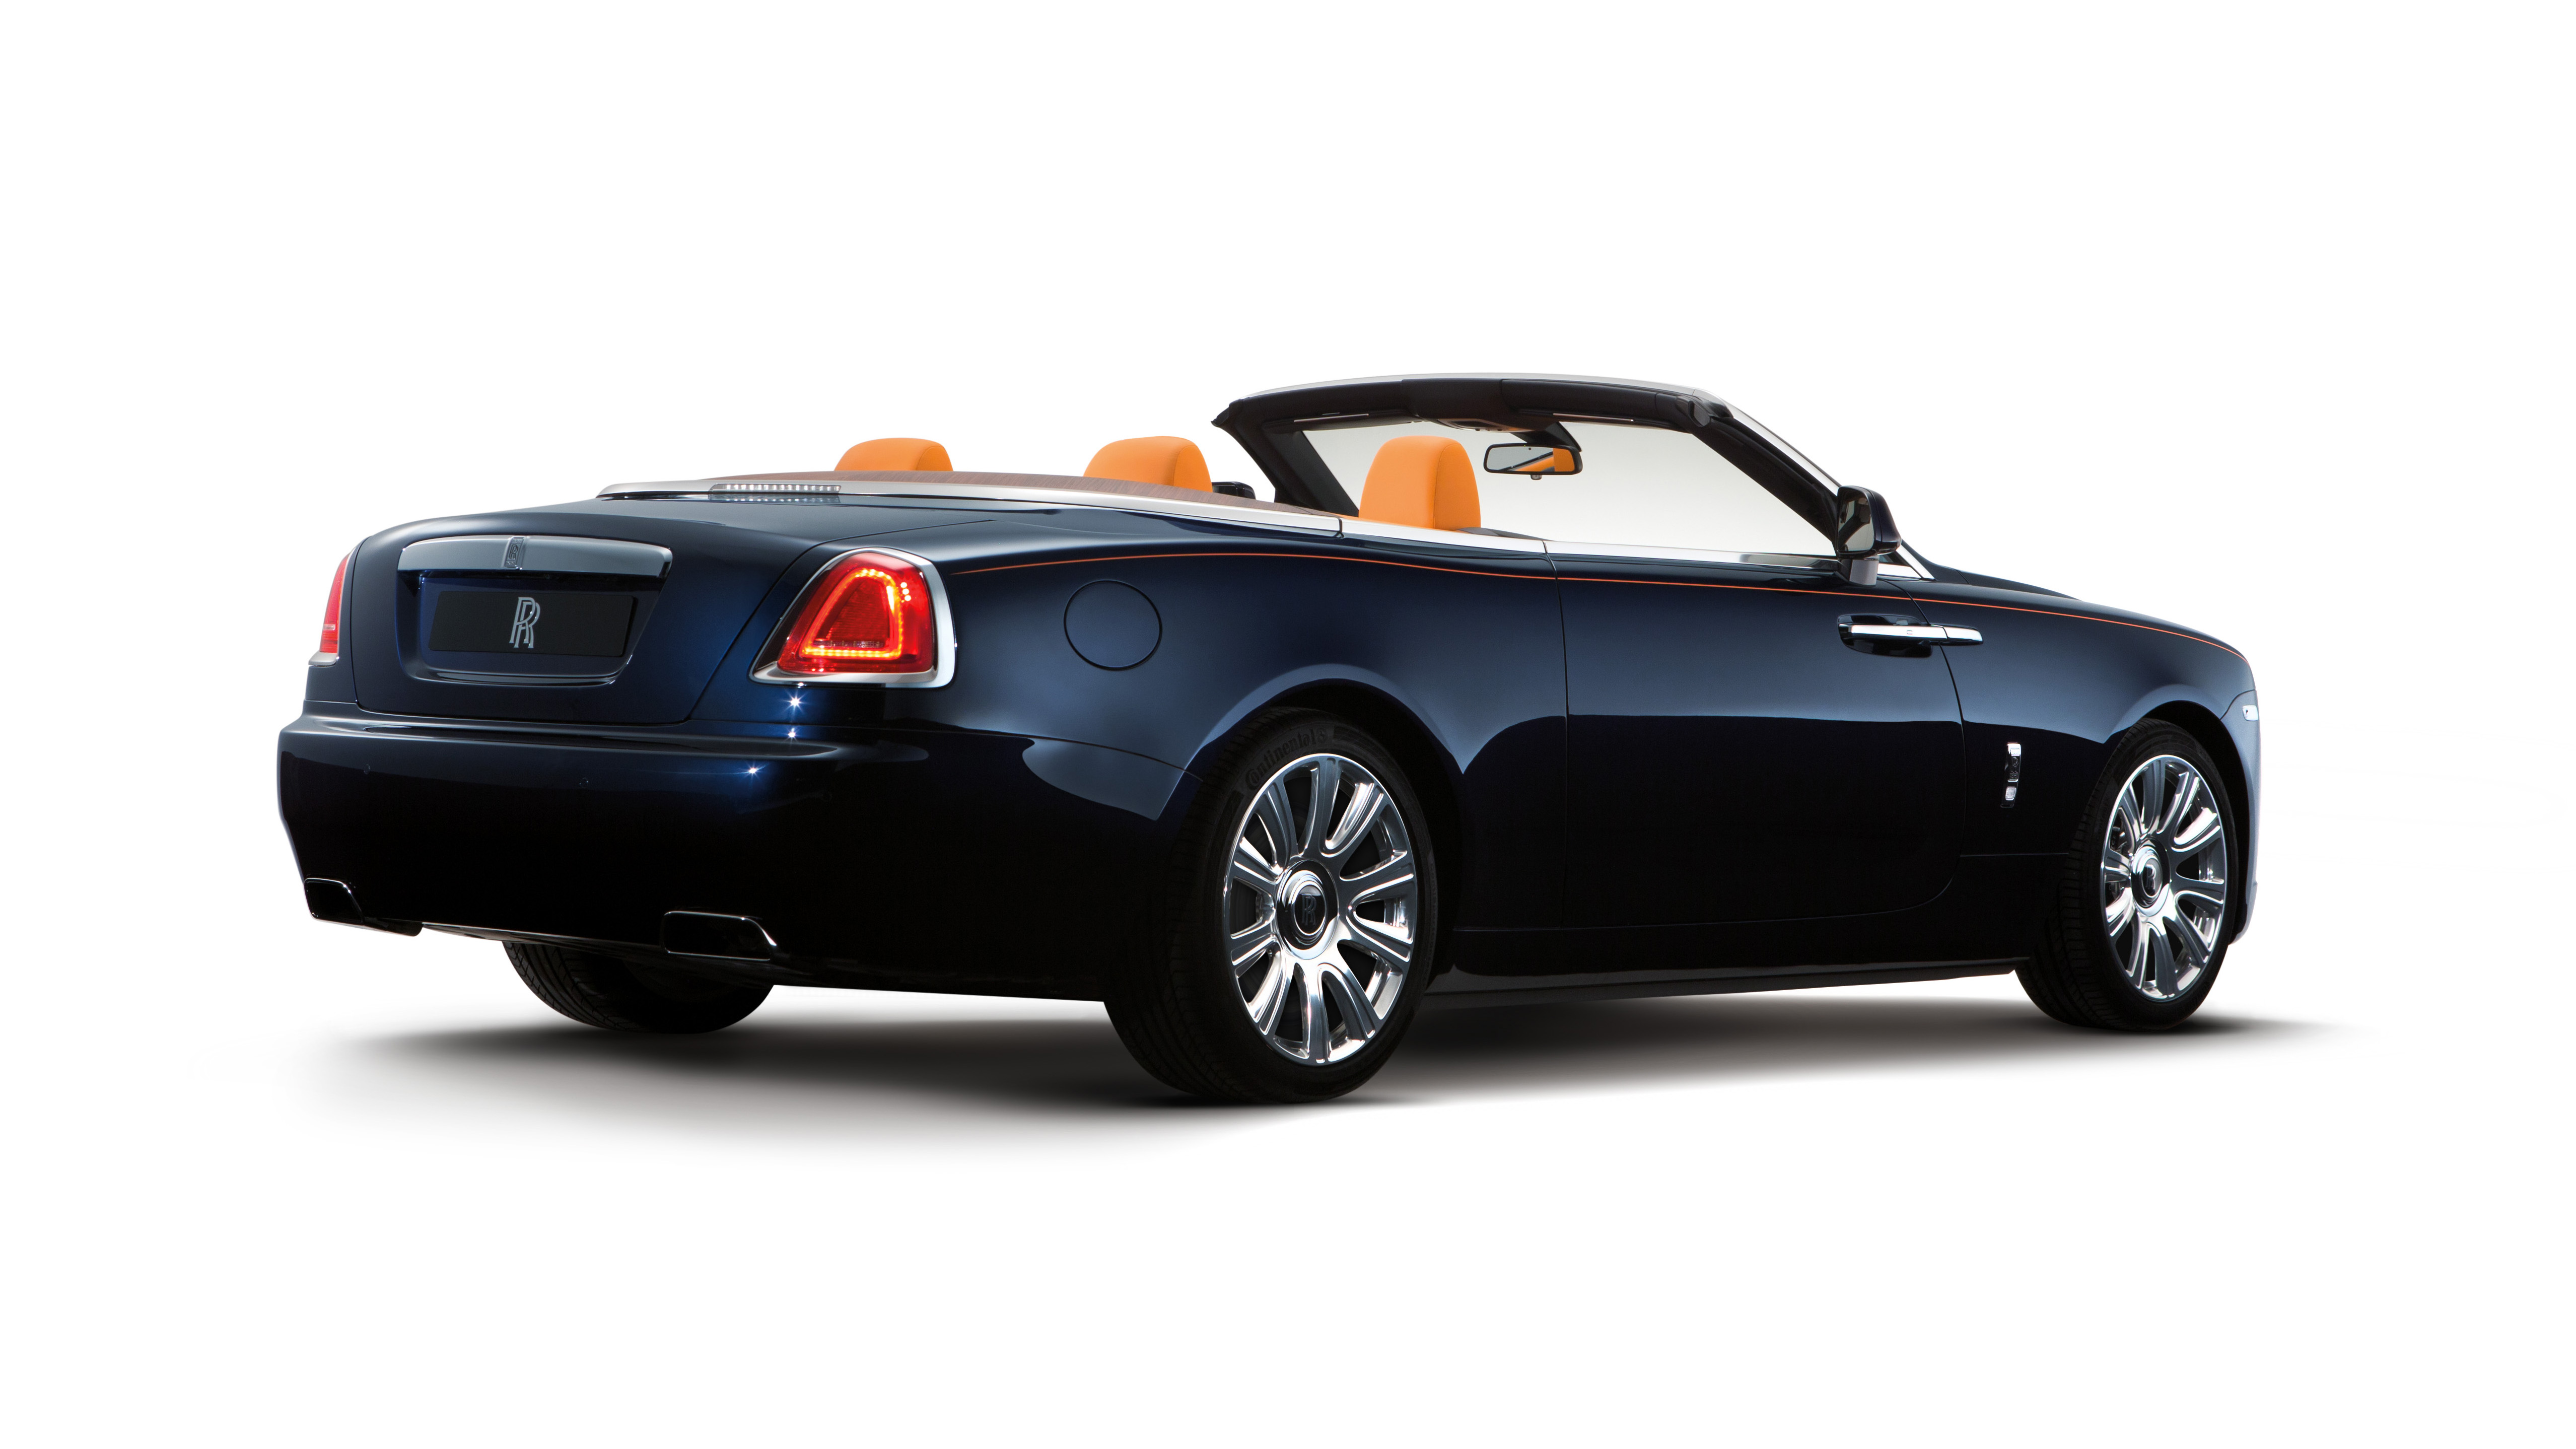 Rolls Royce S New Dawn Is A Glorious 163 250 000 Super Convertible Top Gear